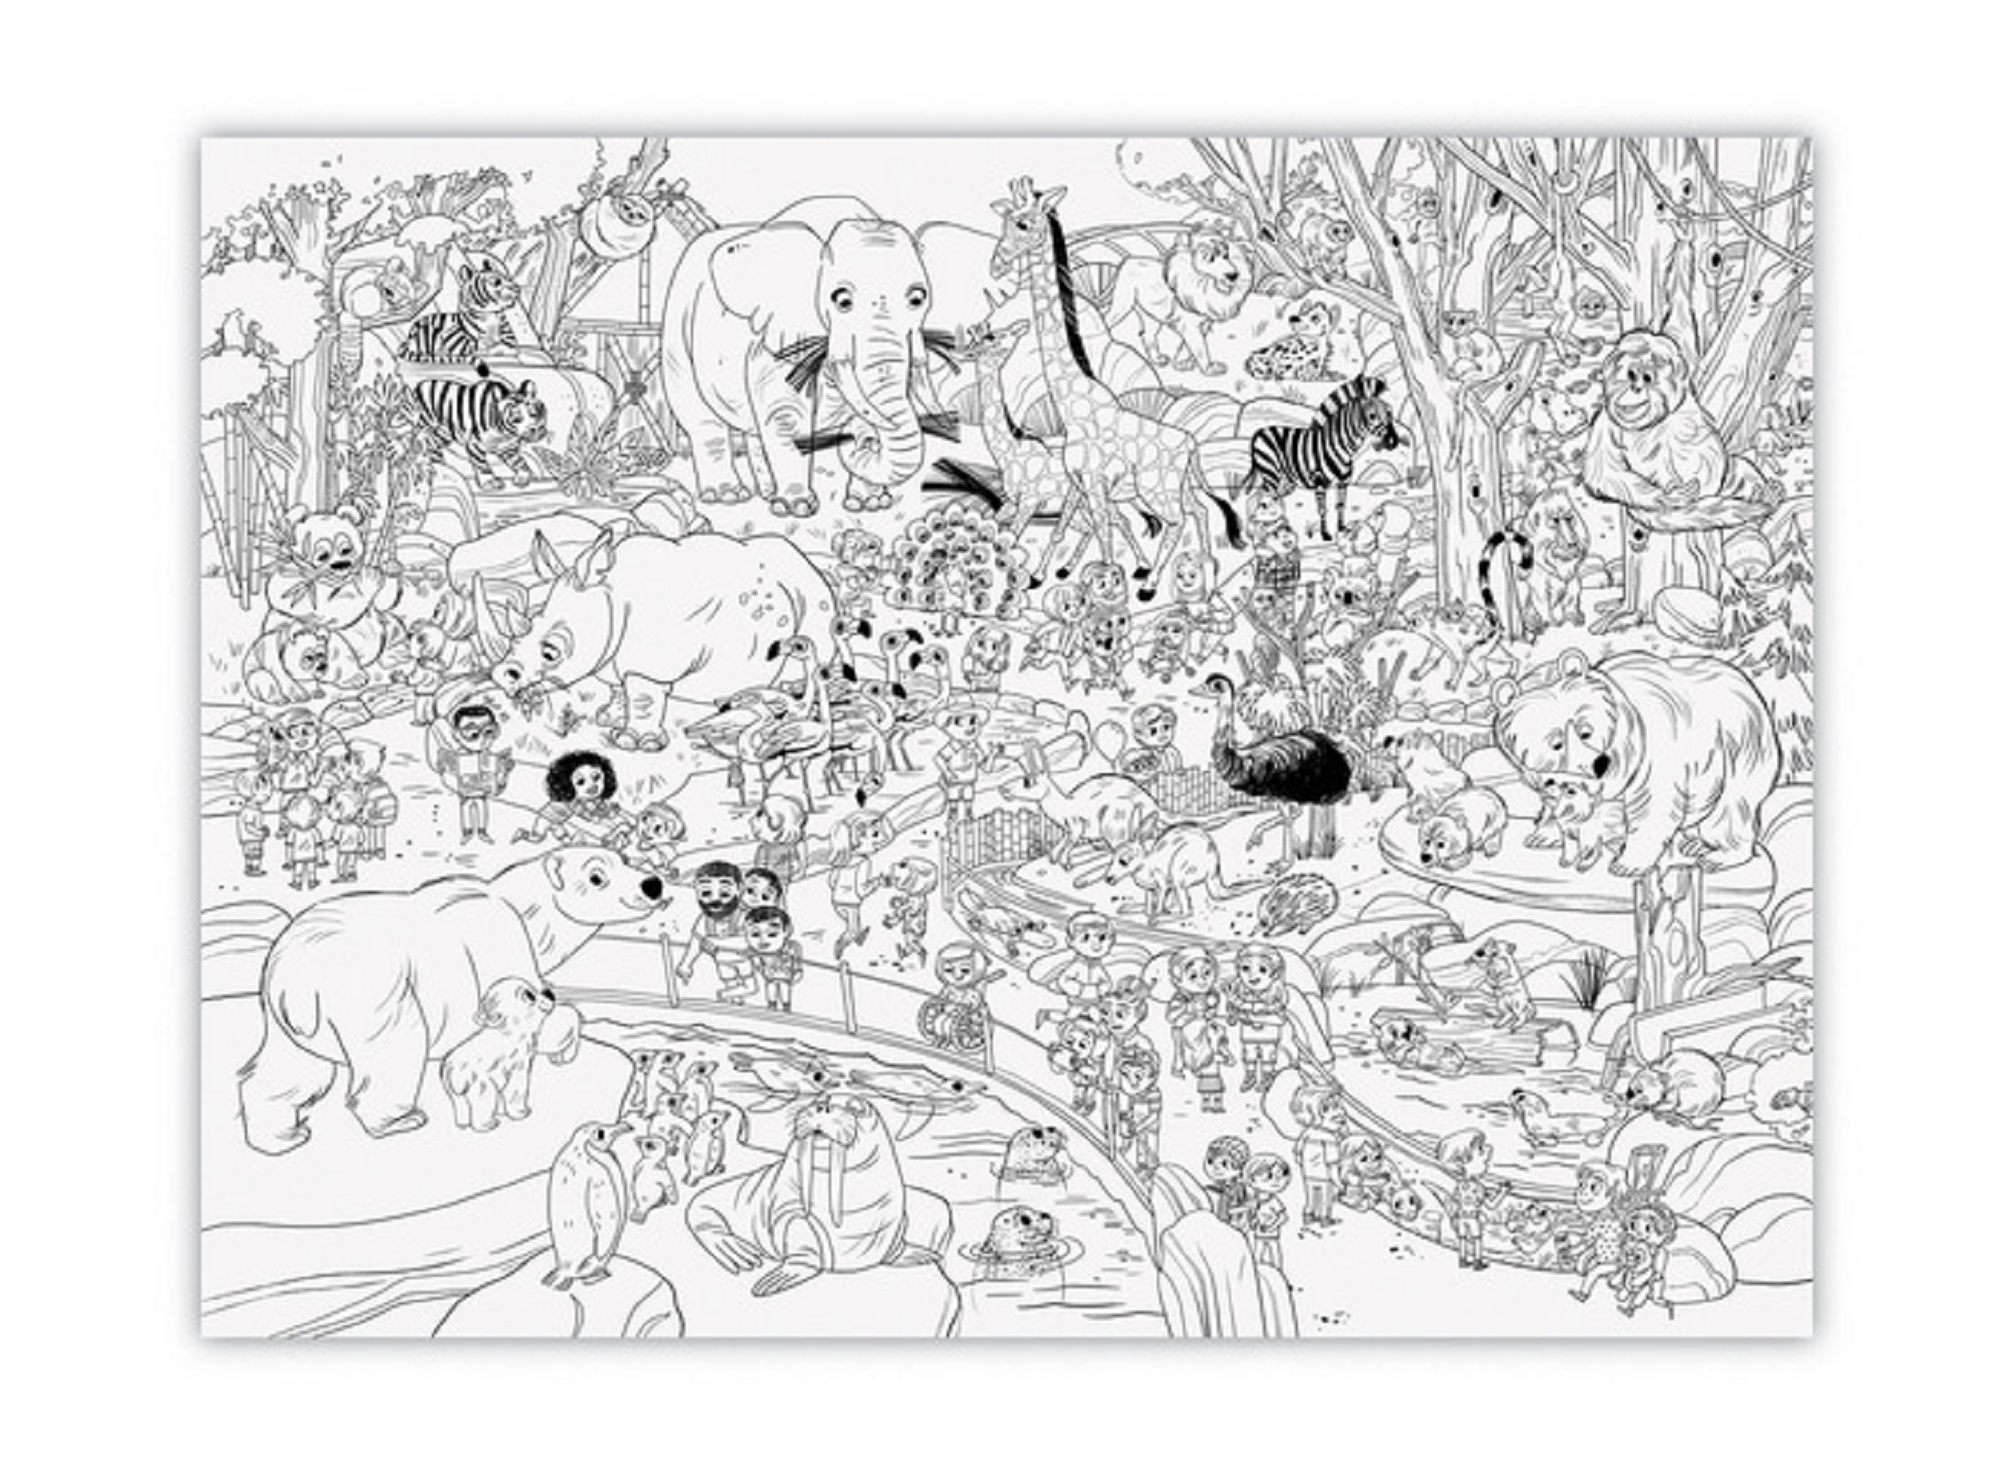 Giant Colouring Poster, Day at the Zoo